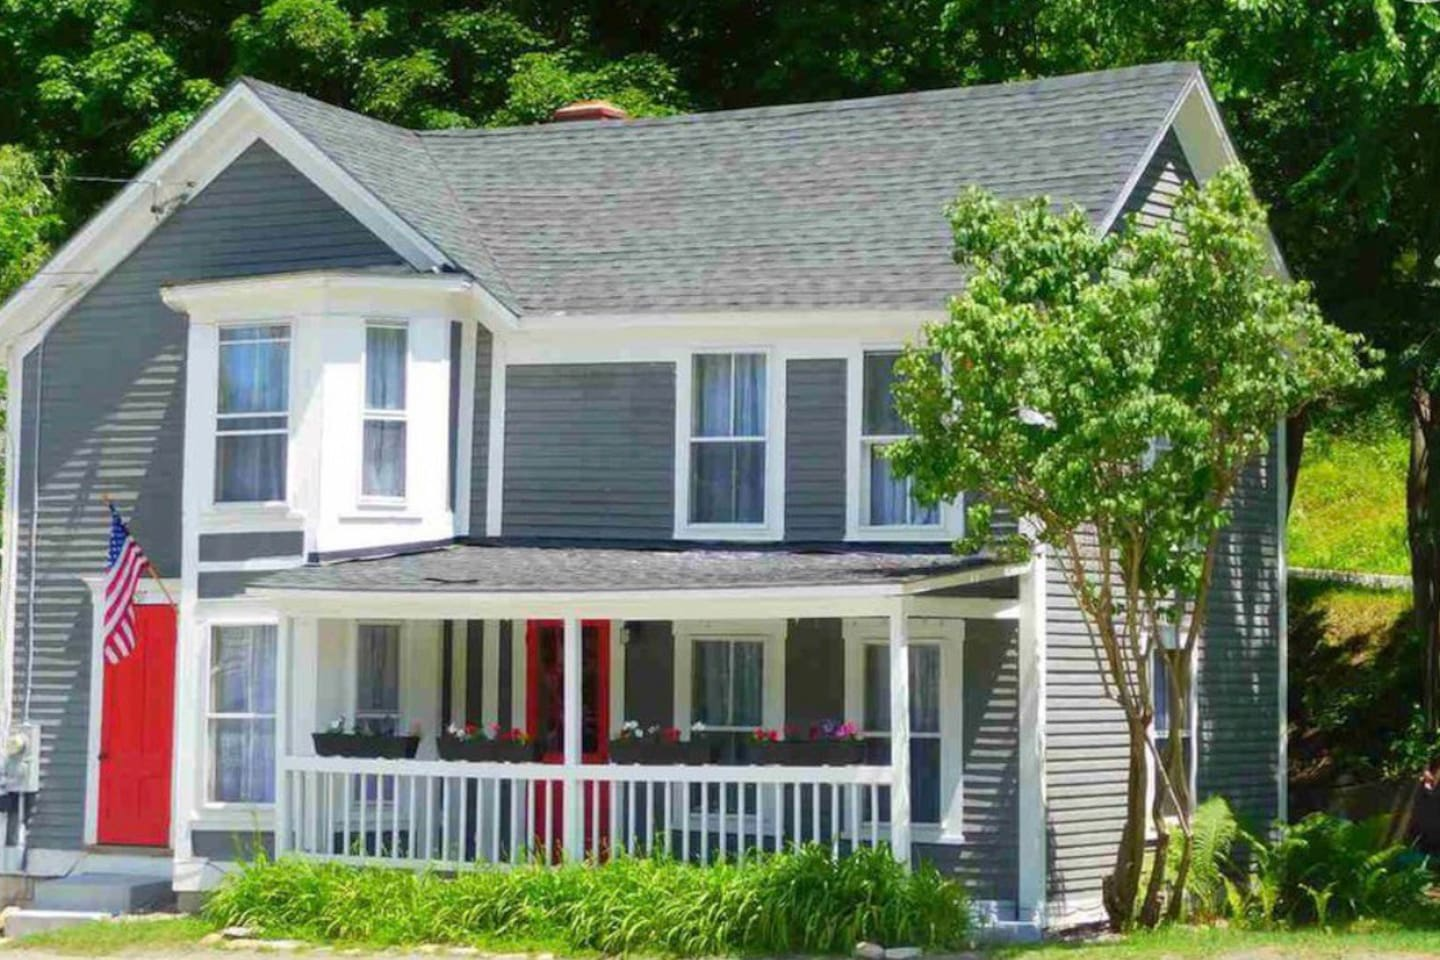 Stay in this lovely historic village home filled with character and charm. Close to Magic, Bromley, and Stratton ski resorts, as well as Lowell Lake State Park and hiking trails. Shopping, restaurants, New England culture, and gorgeous views!